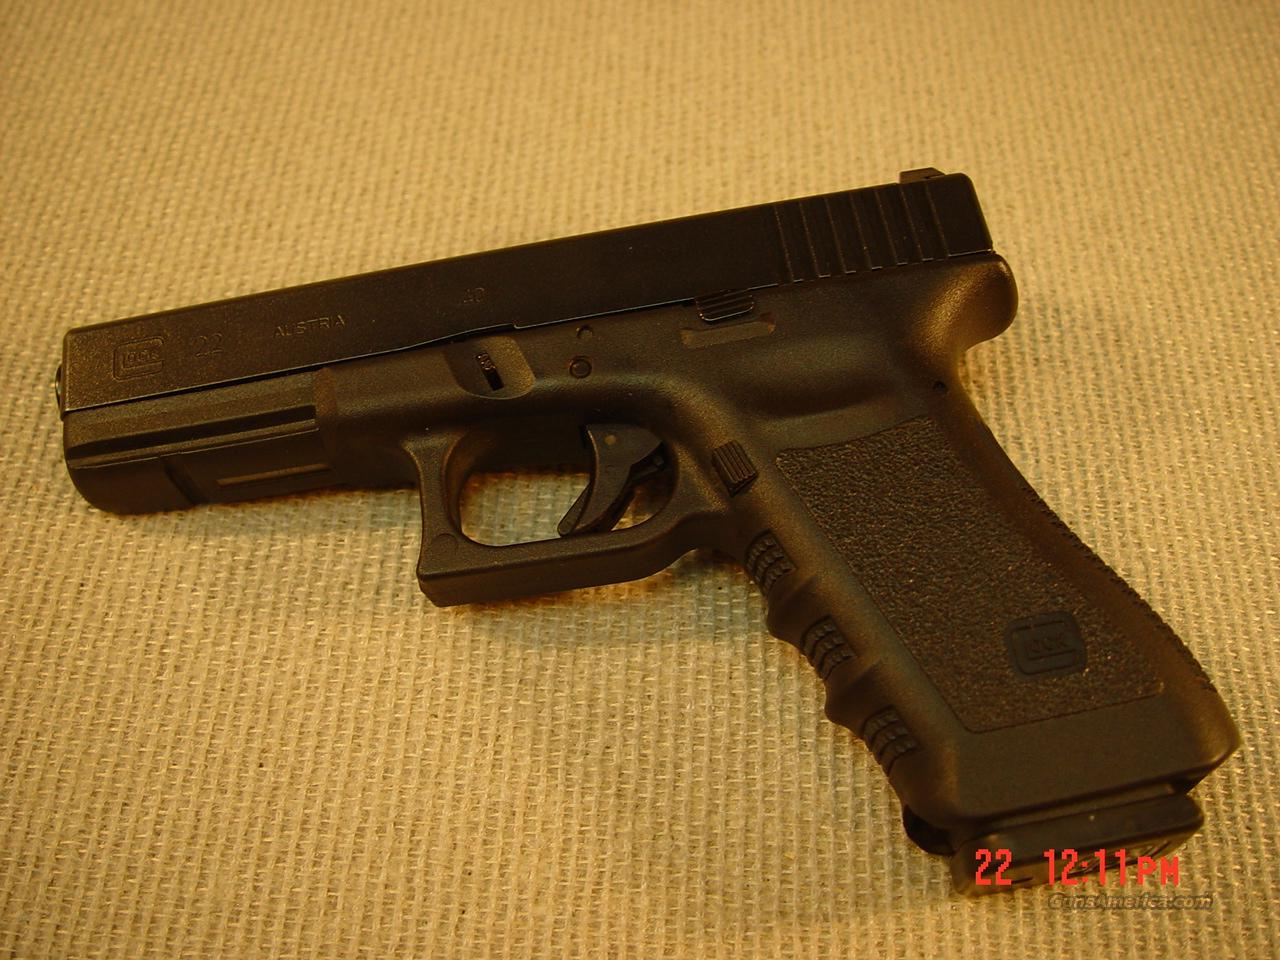 GLOCK 22 THIRD GENERATION 40 S&W (Like New)  Guns > Pistols > Glock Pistols > 22